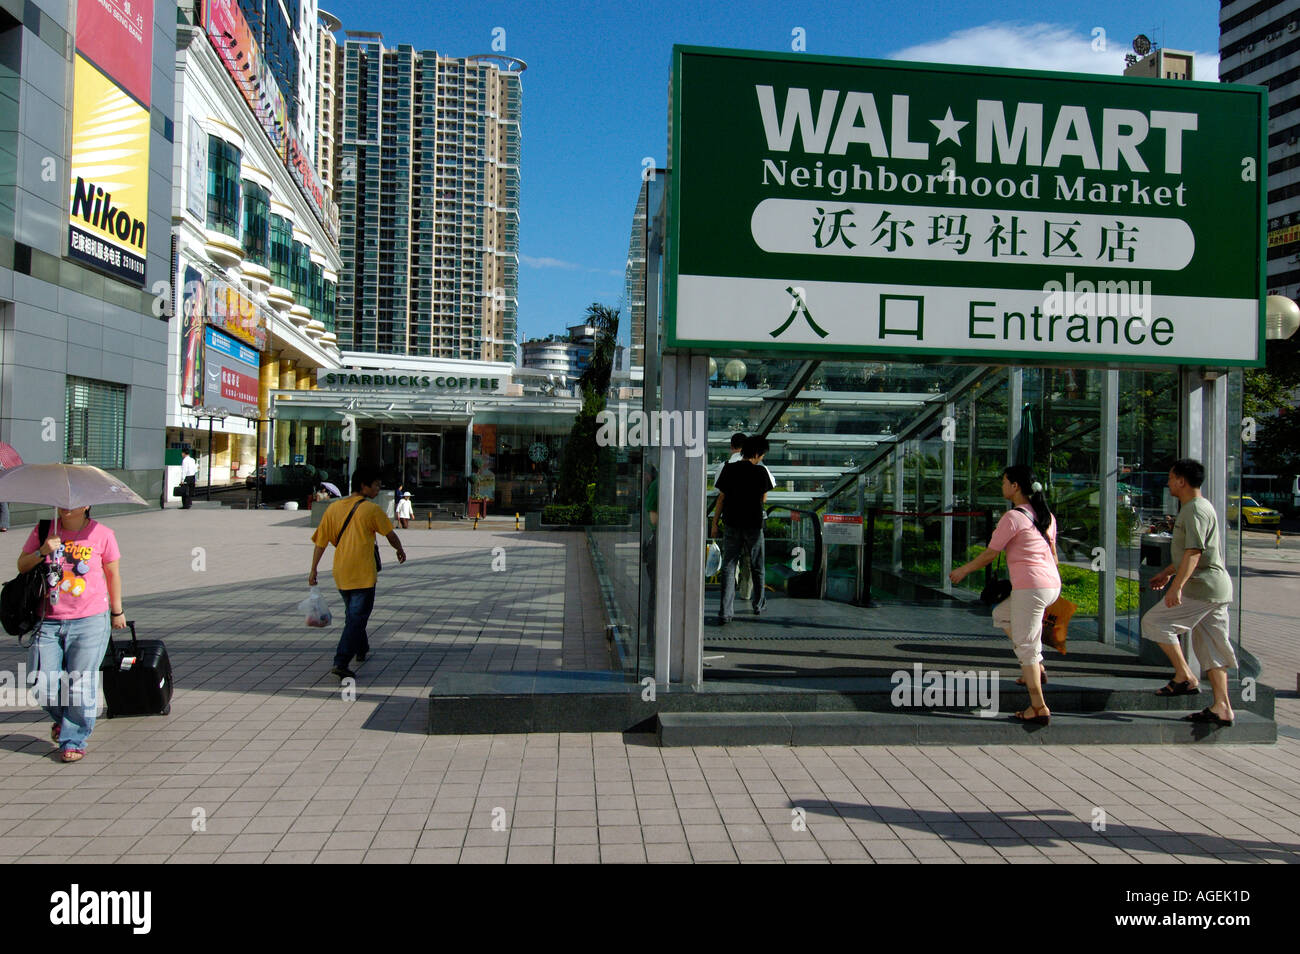 Walmart In China Stock Photos Walmart In China Stock Images Alamy